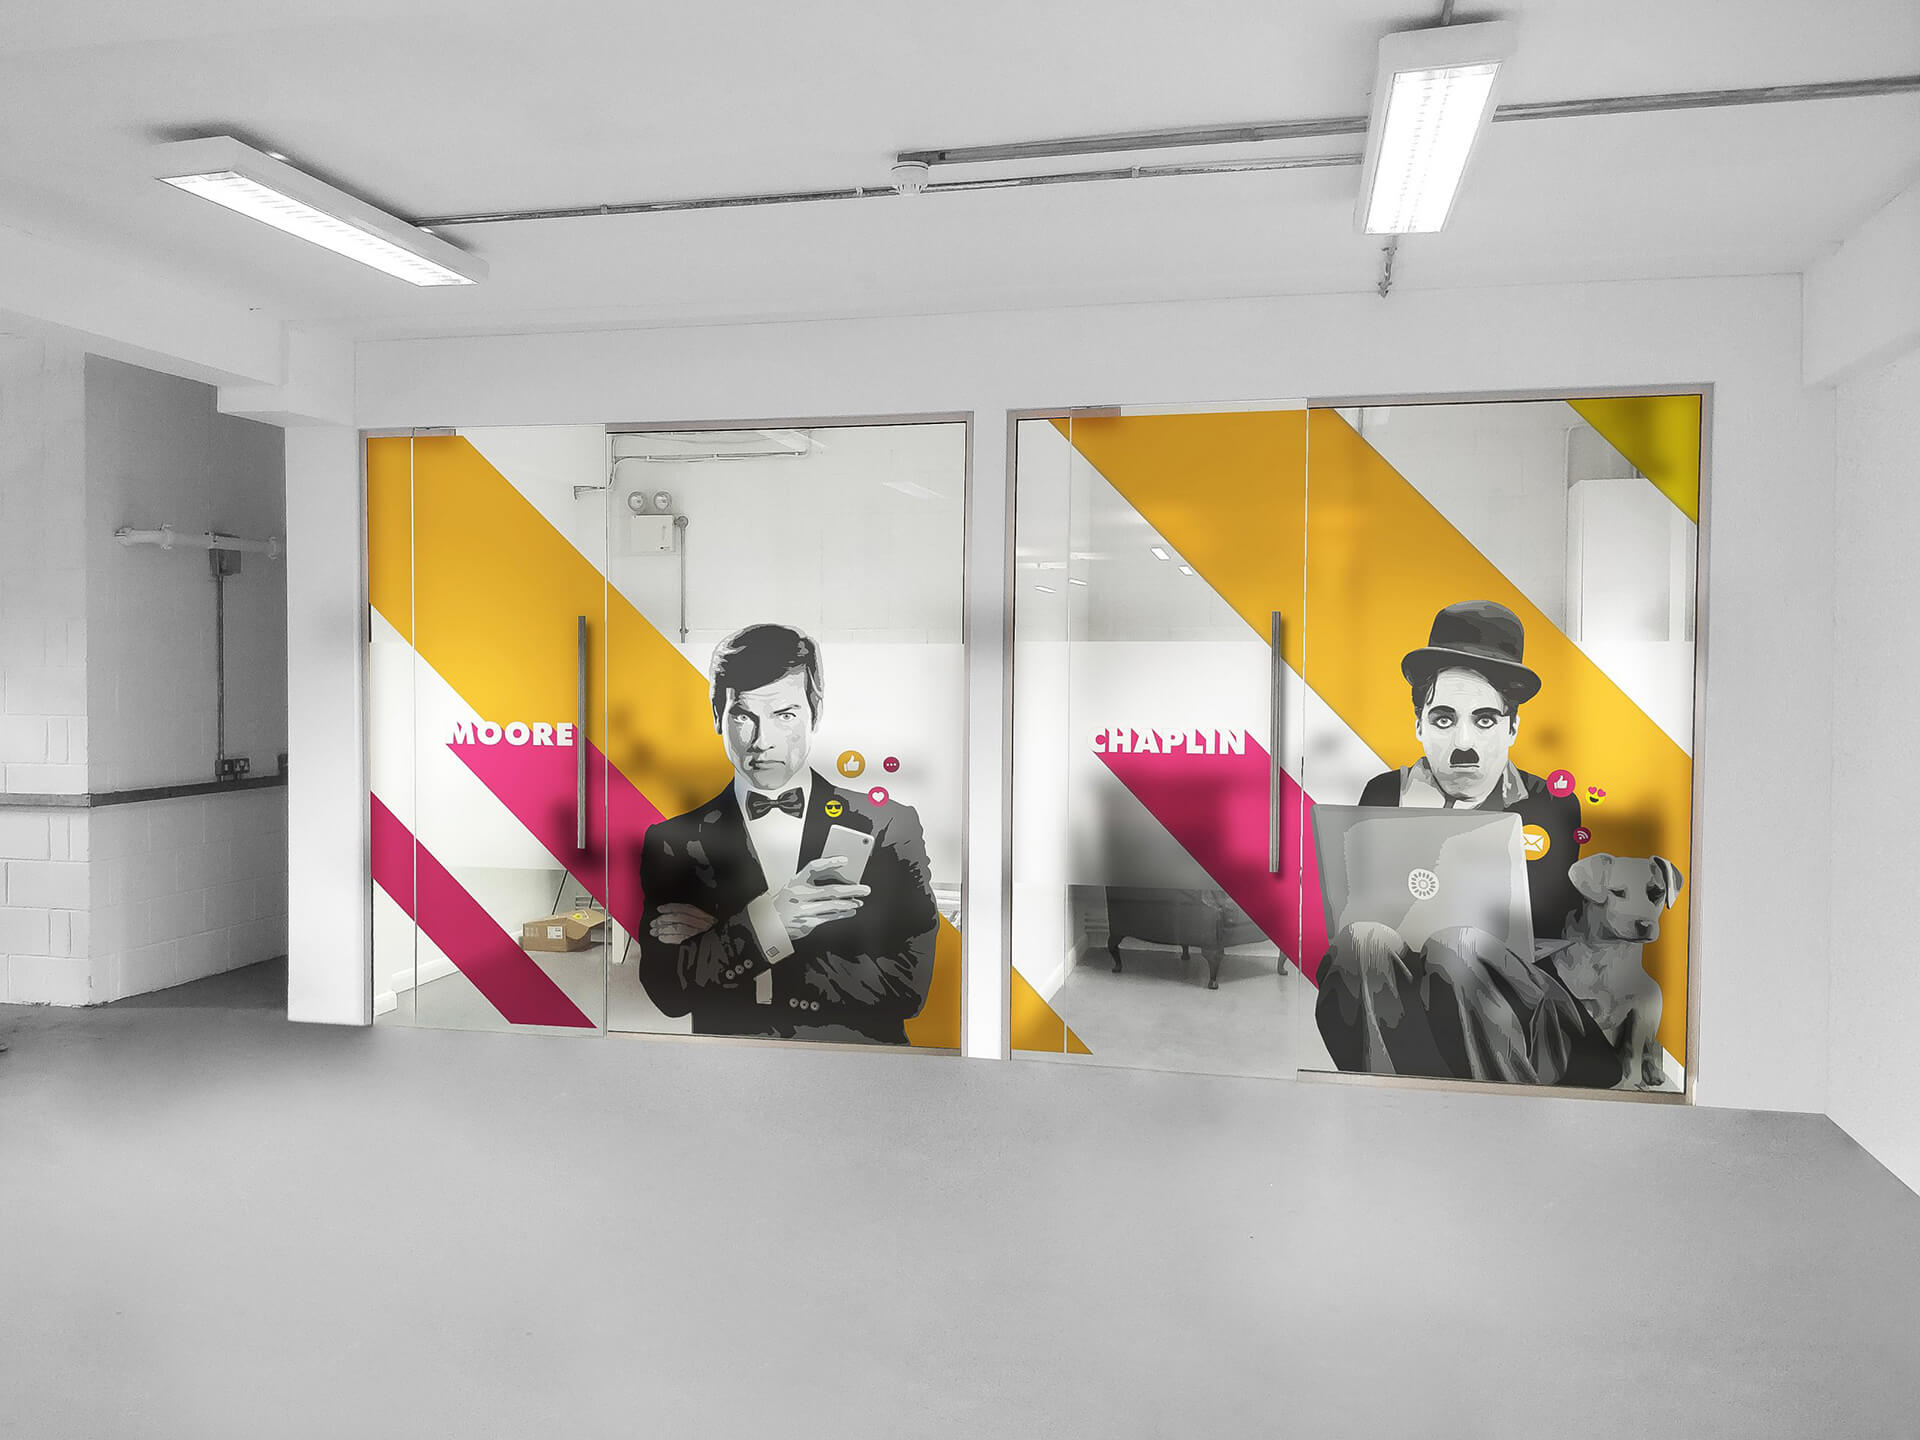 Passion Digital - Moore and Chaplin Rooms